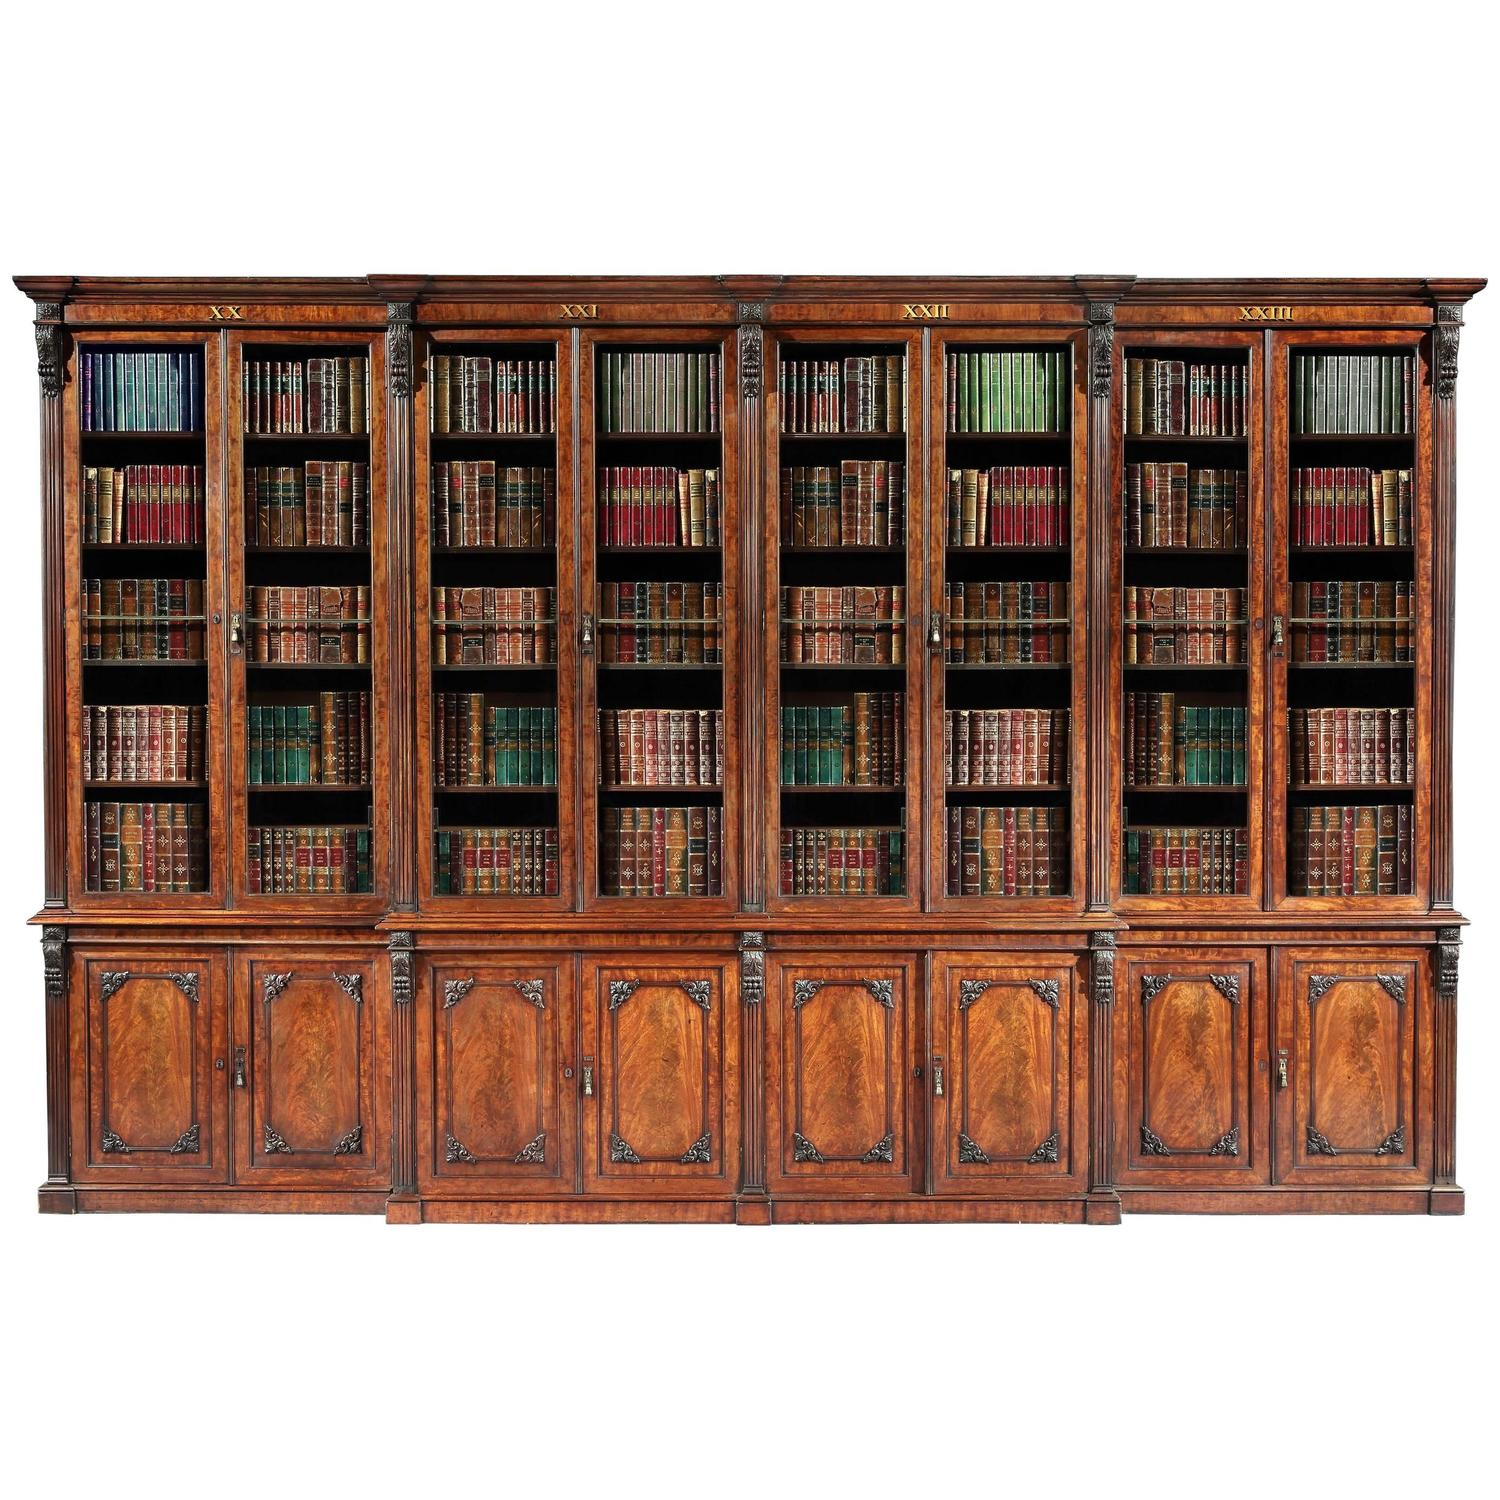 Antique 19th Century English Mahogany Library Bookcase For